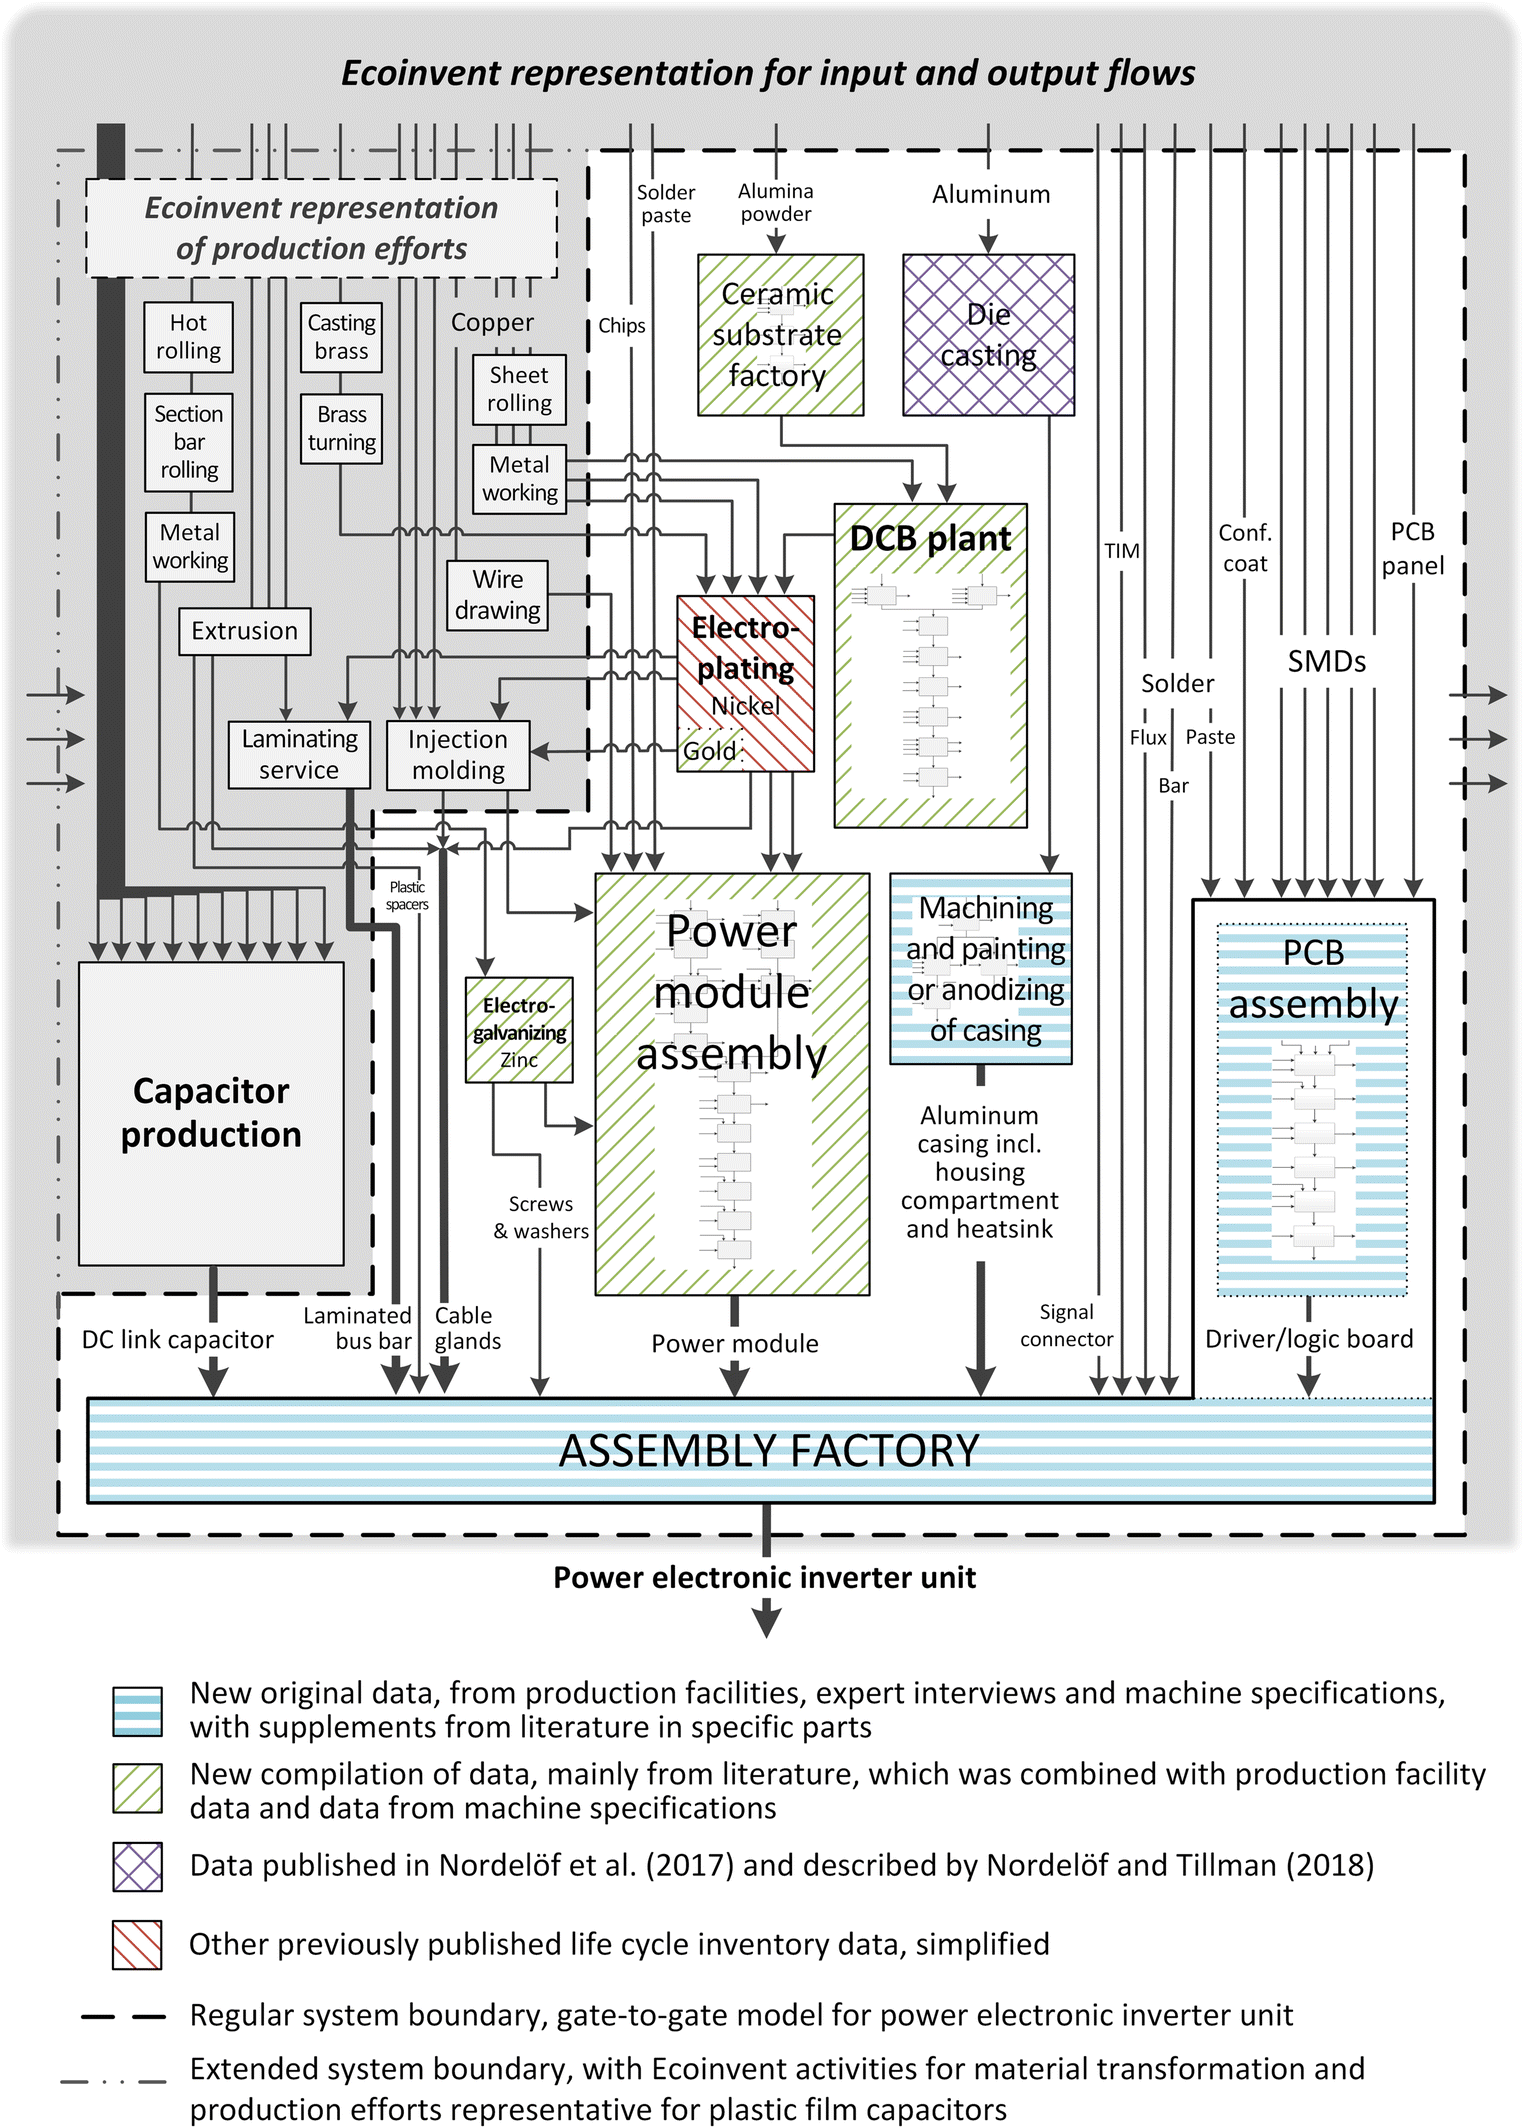 A Scalable Life Cycle Inventory Of An Automotive Power Electronic Igbt Inverter Schematic Free Download Wiring Diagram Open Image In New Window